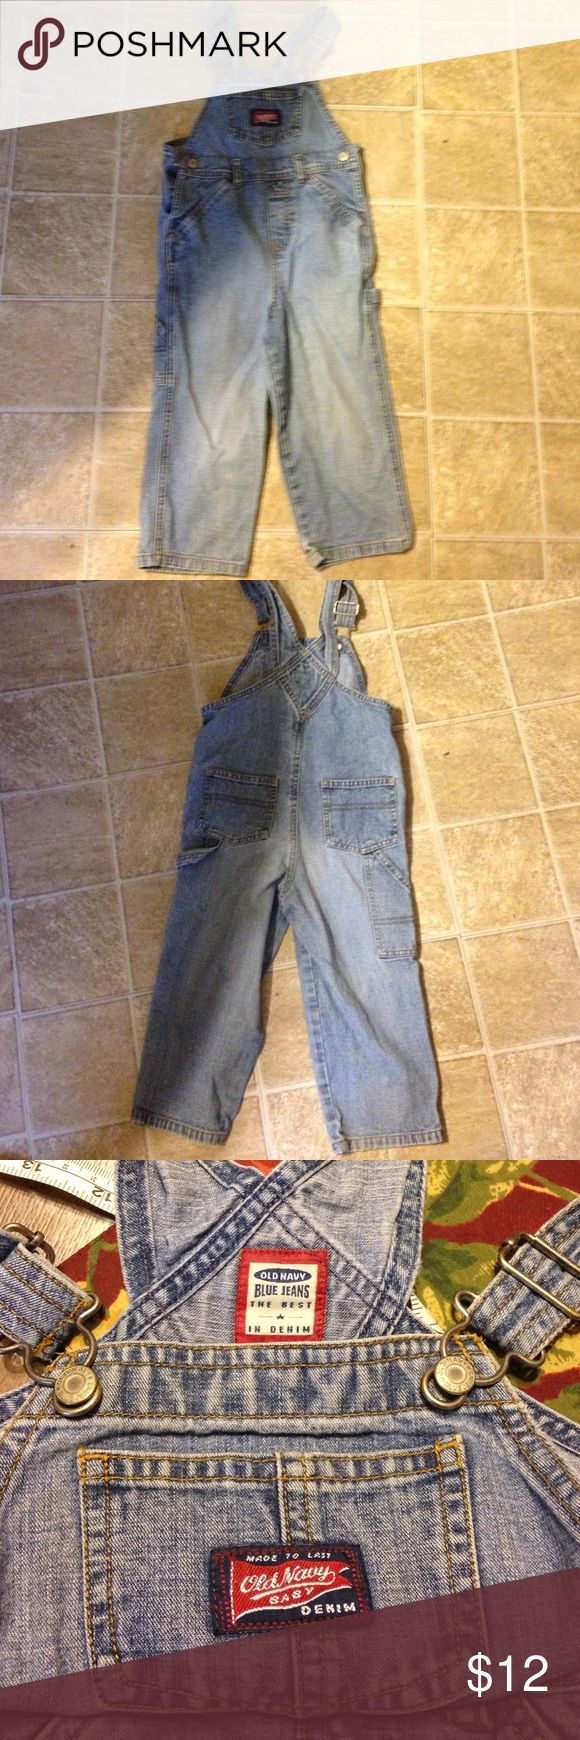 Old Navy overalls. Sz 3T Old Navy overalls. Sz 3T. Cute!! Old Navy Bottoms Overalls